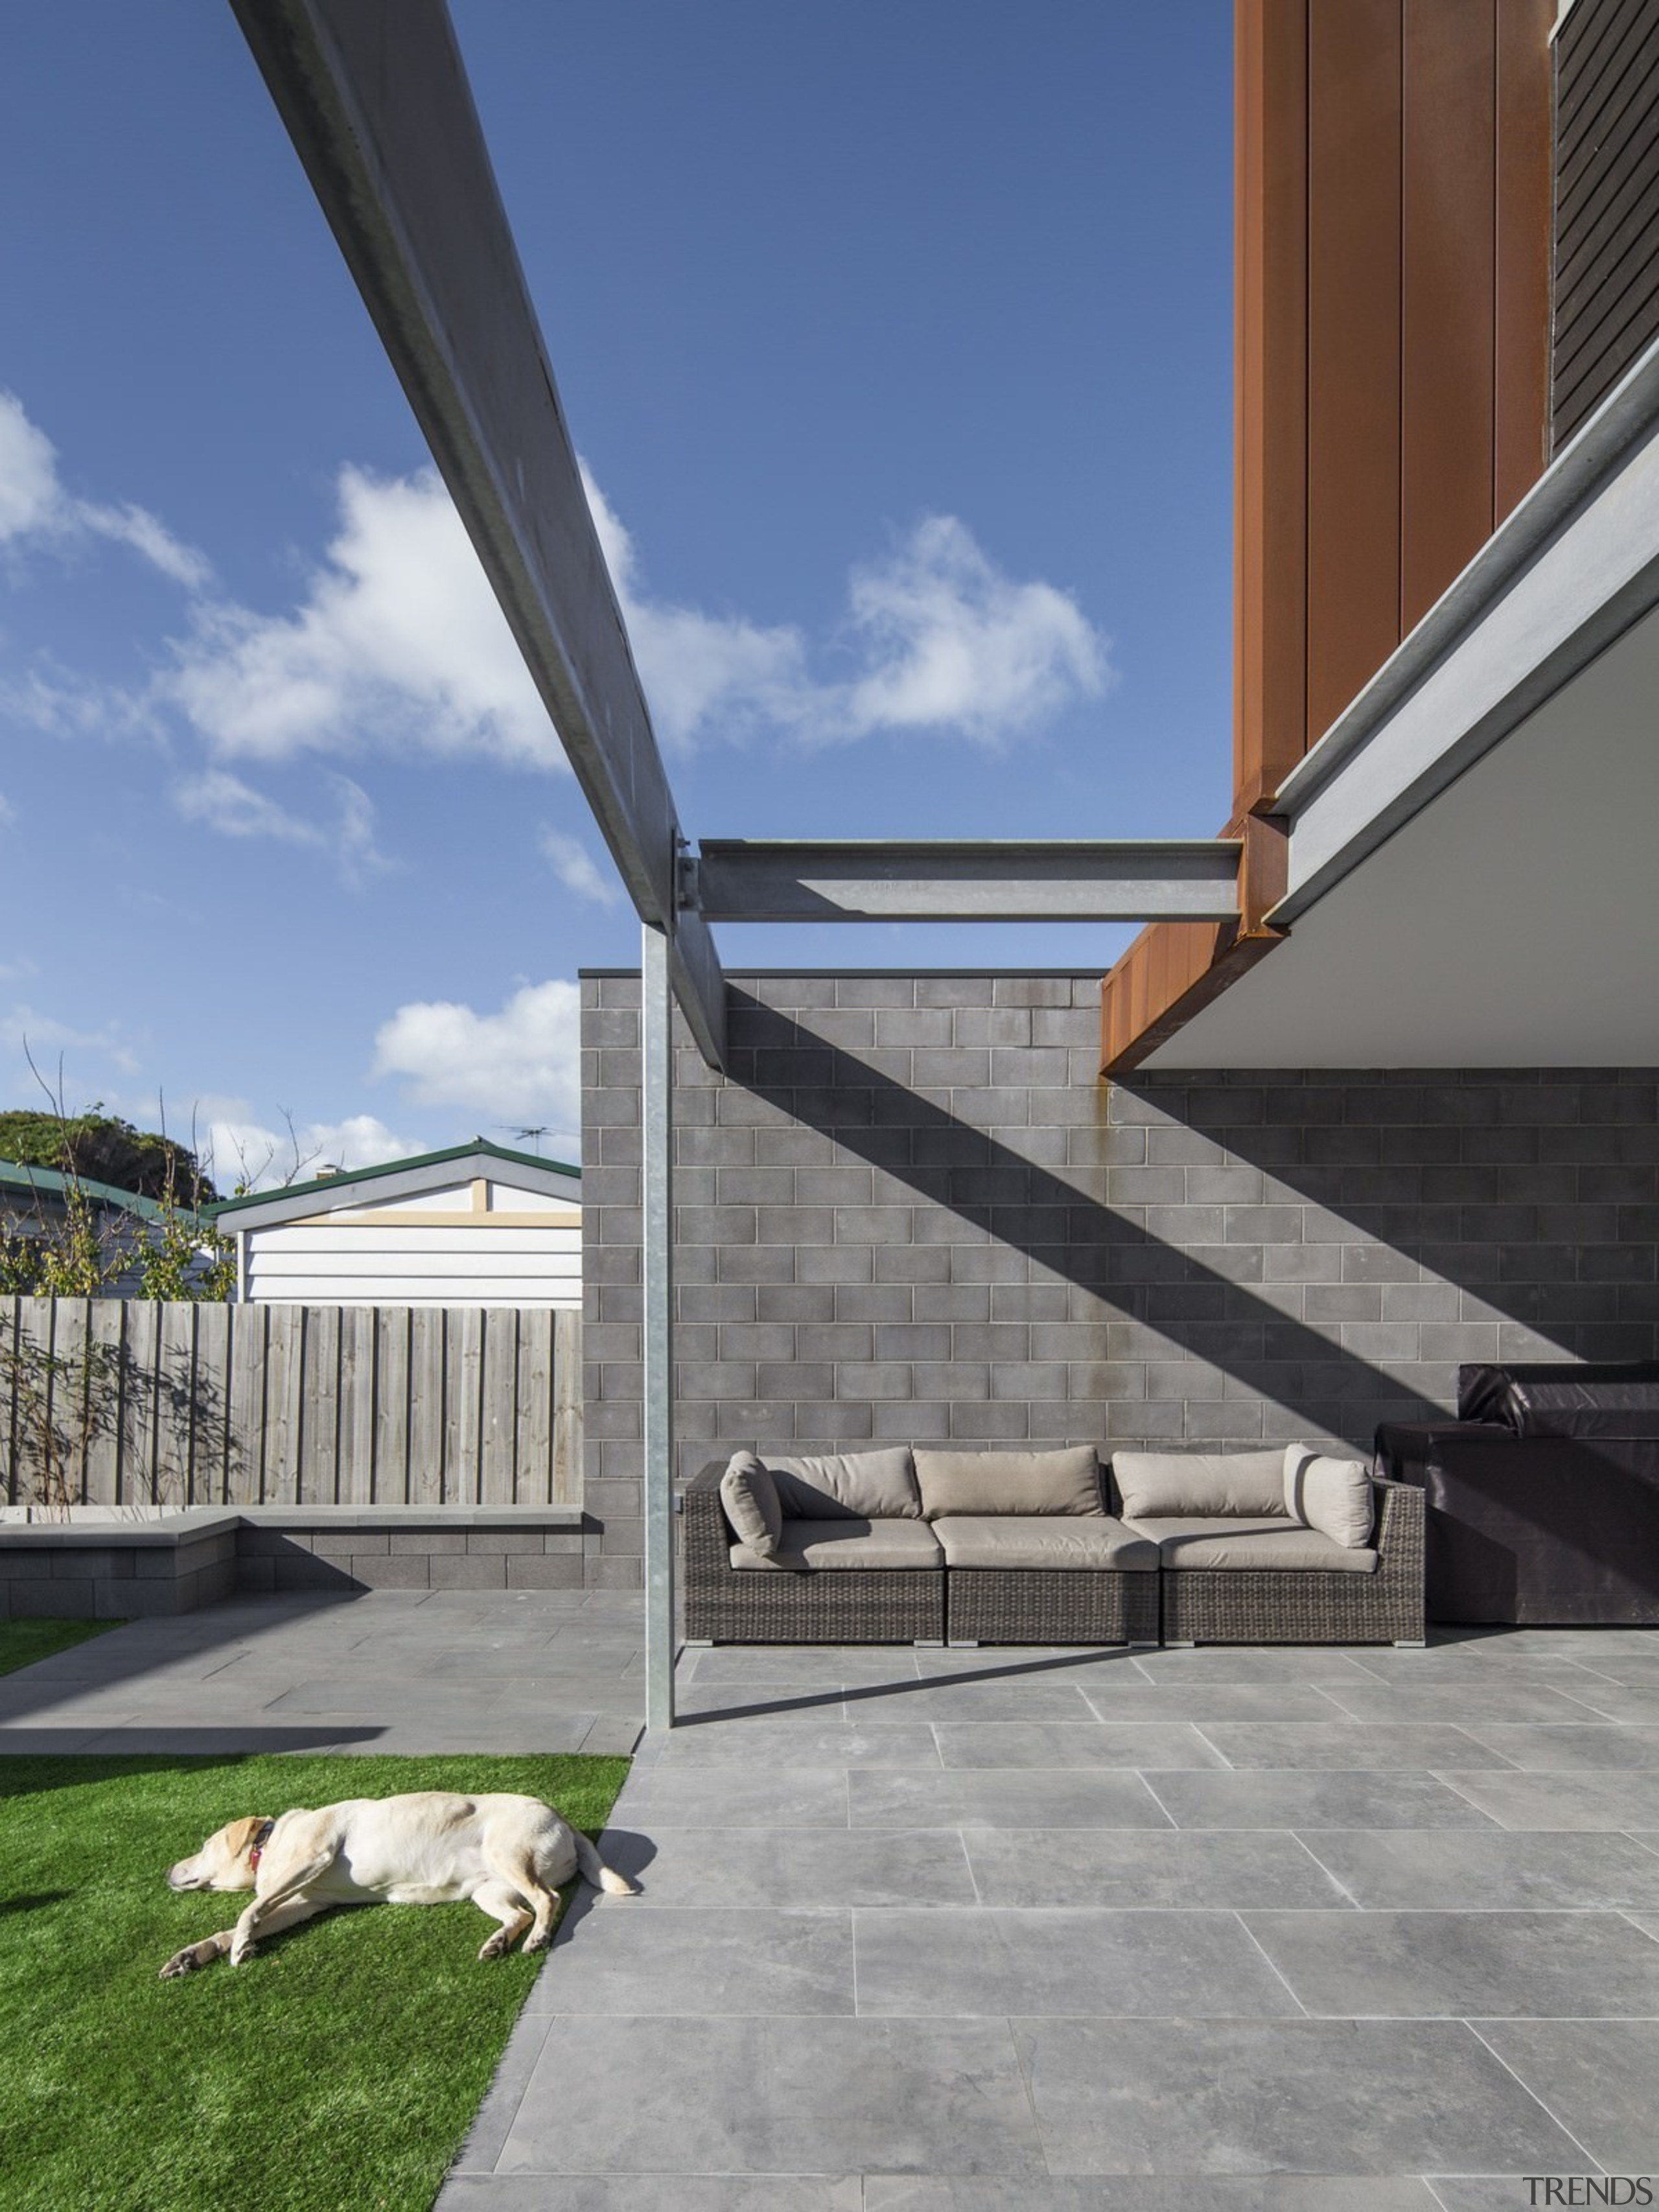 This comfortable outdoor area extends out from the architecture, building, daylighting, house, roof, sky, structure, gray